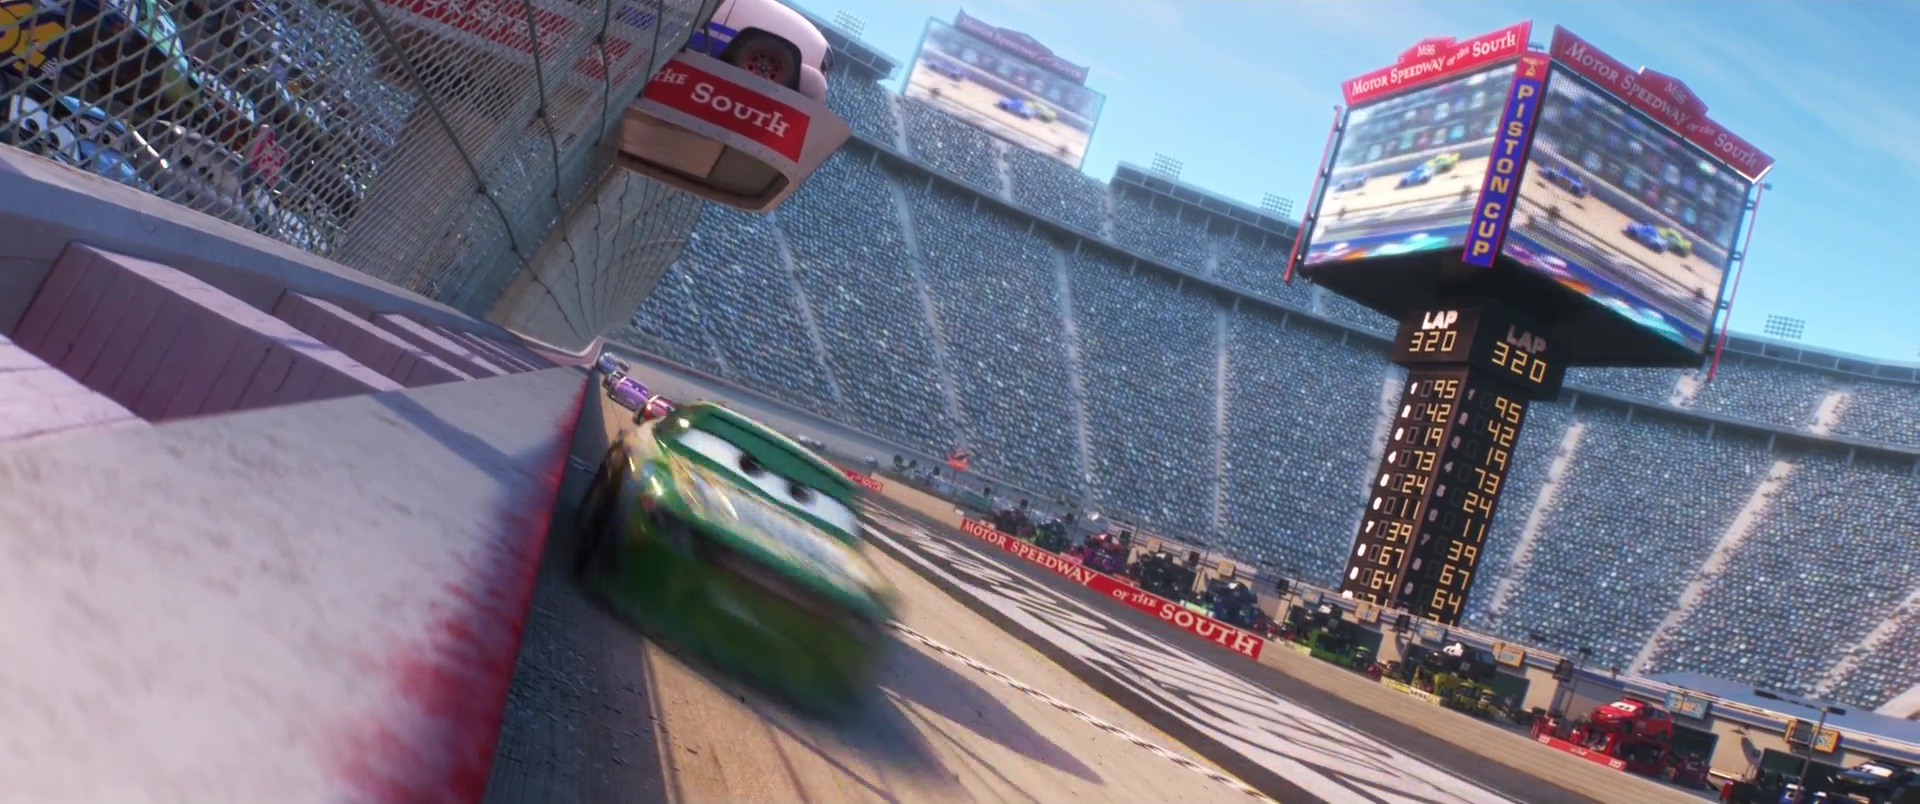 tommy highbanks personnage character disney pixar cars 3